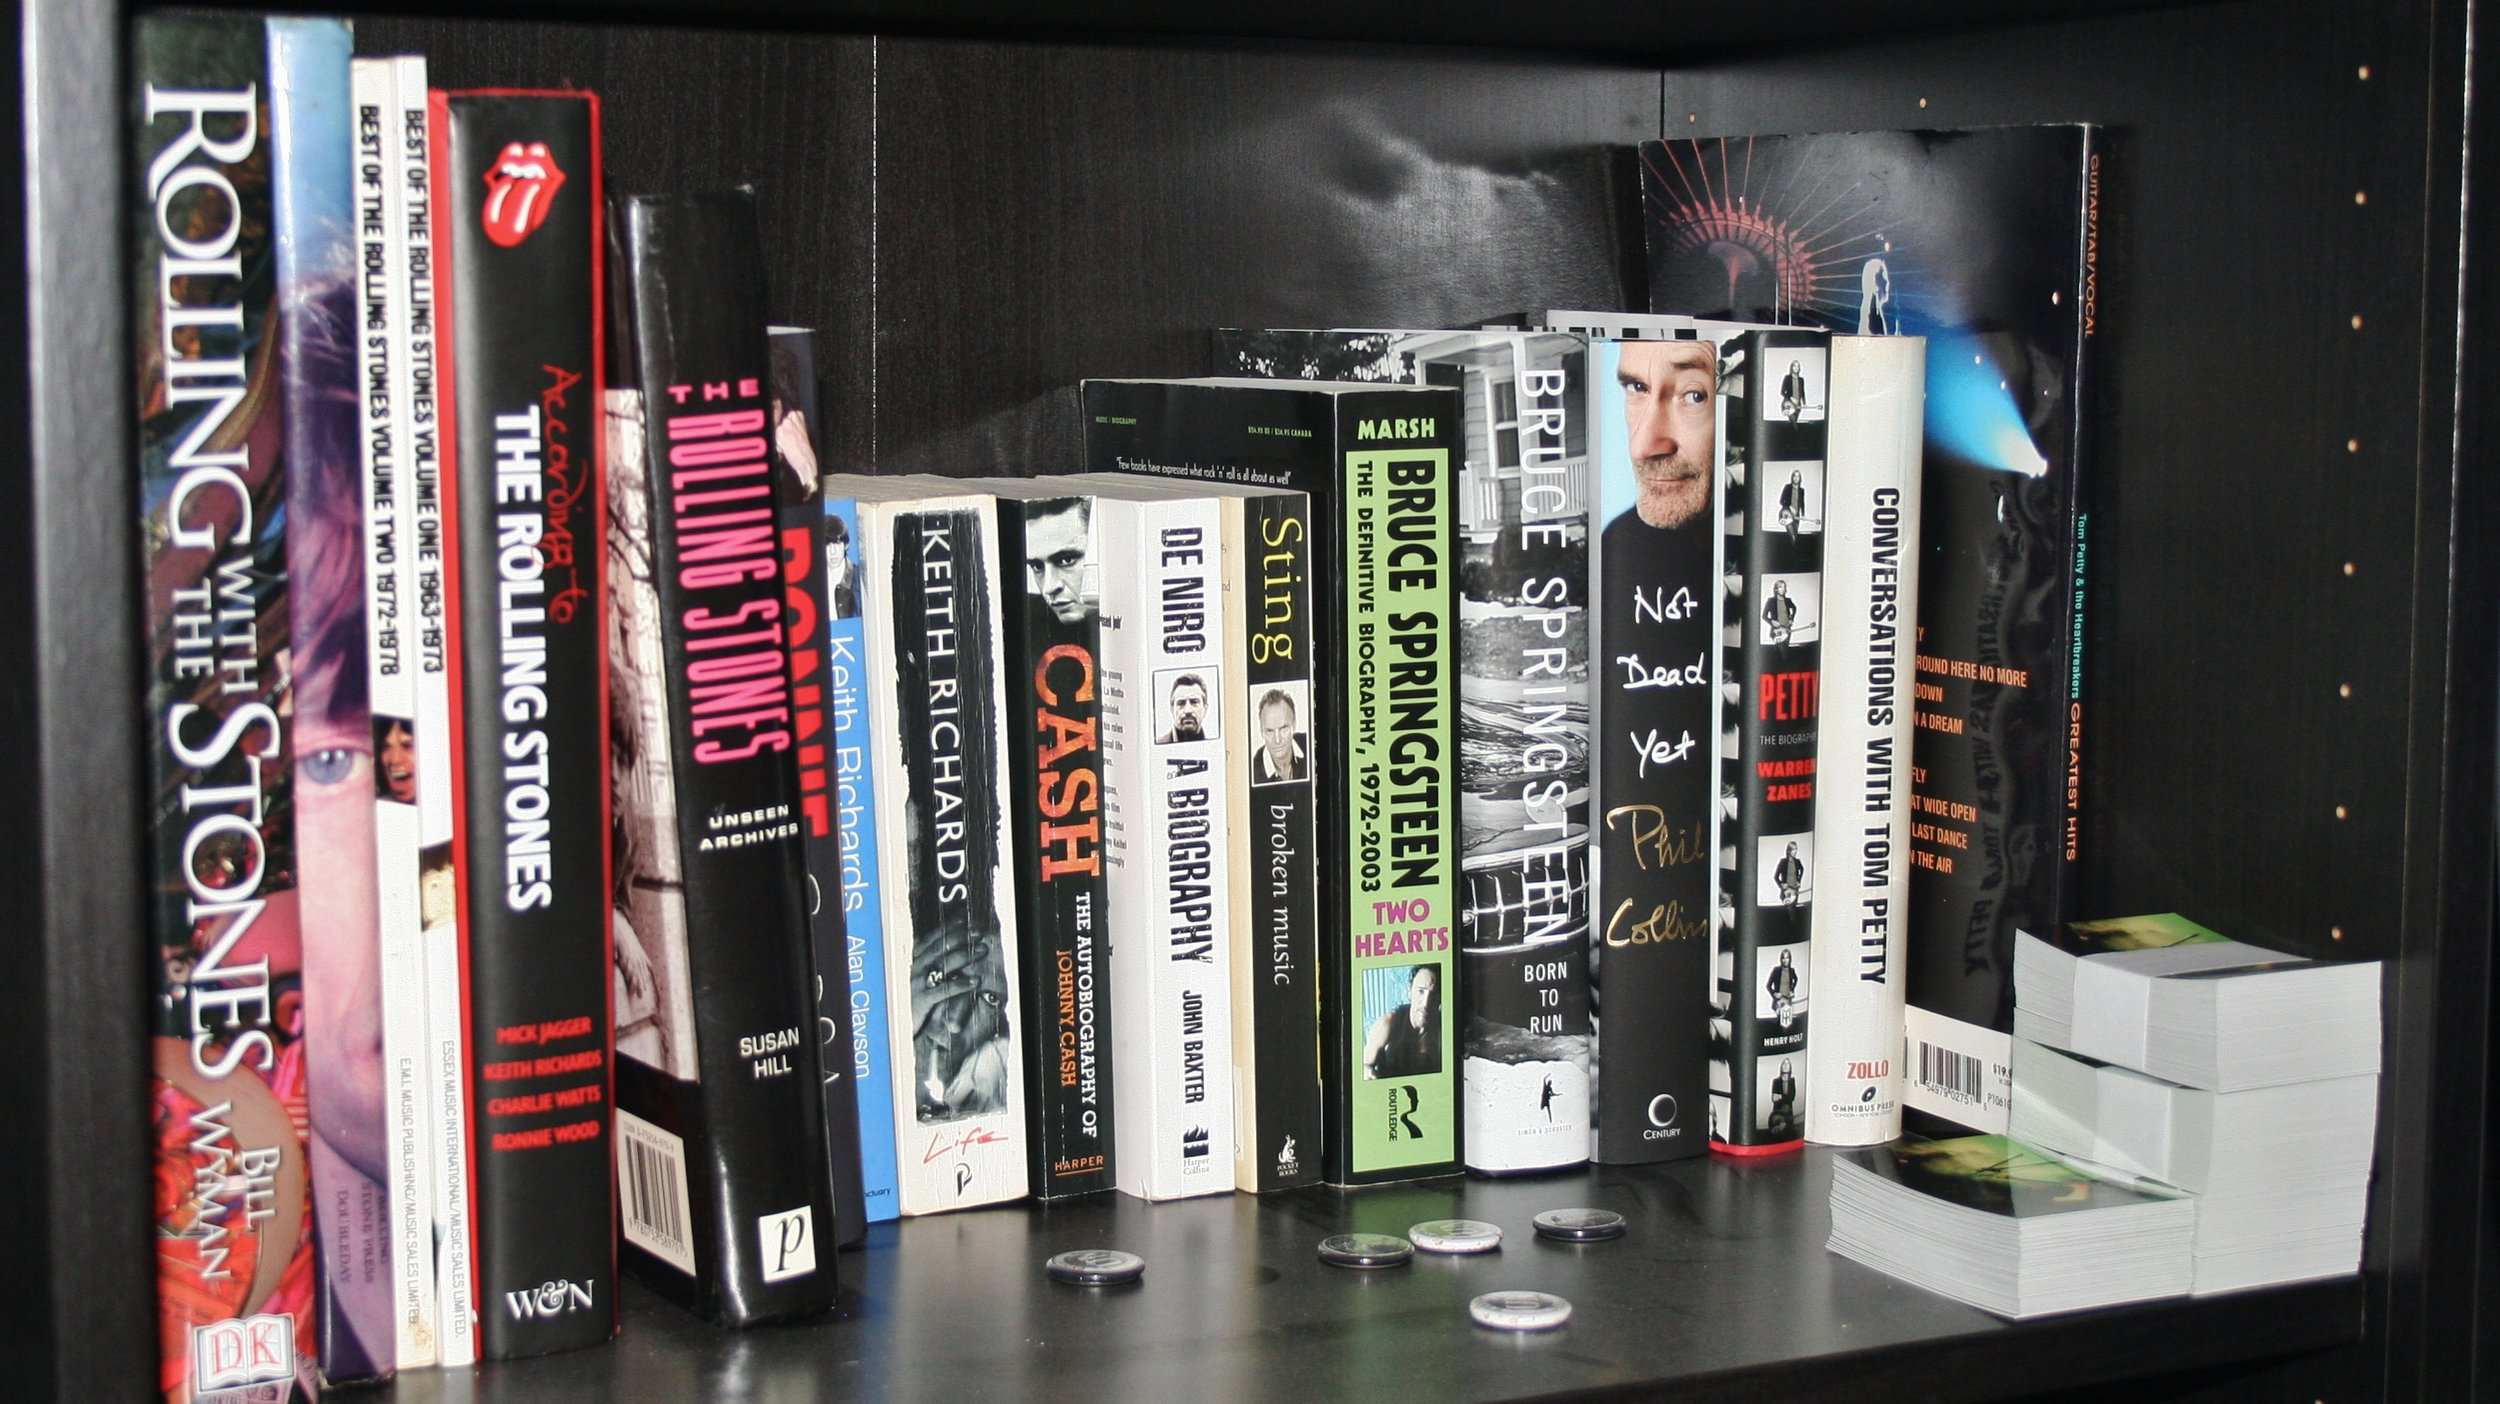 ...Or in this case another two Rock biographies.